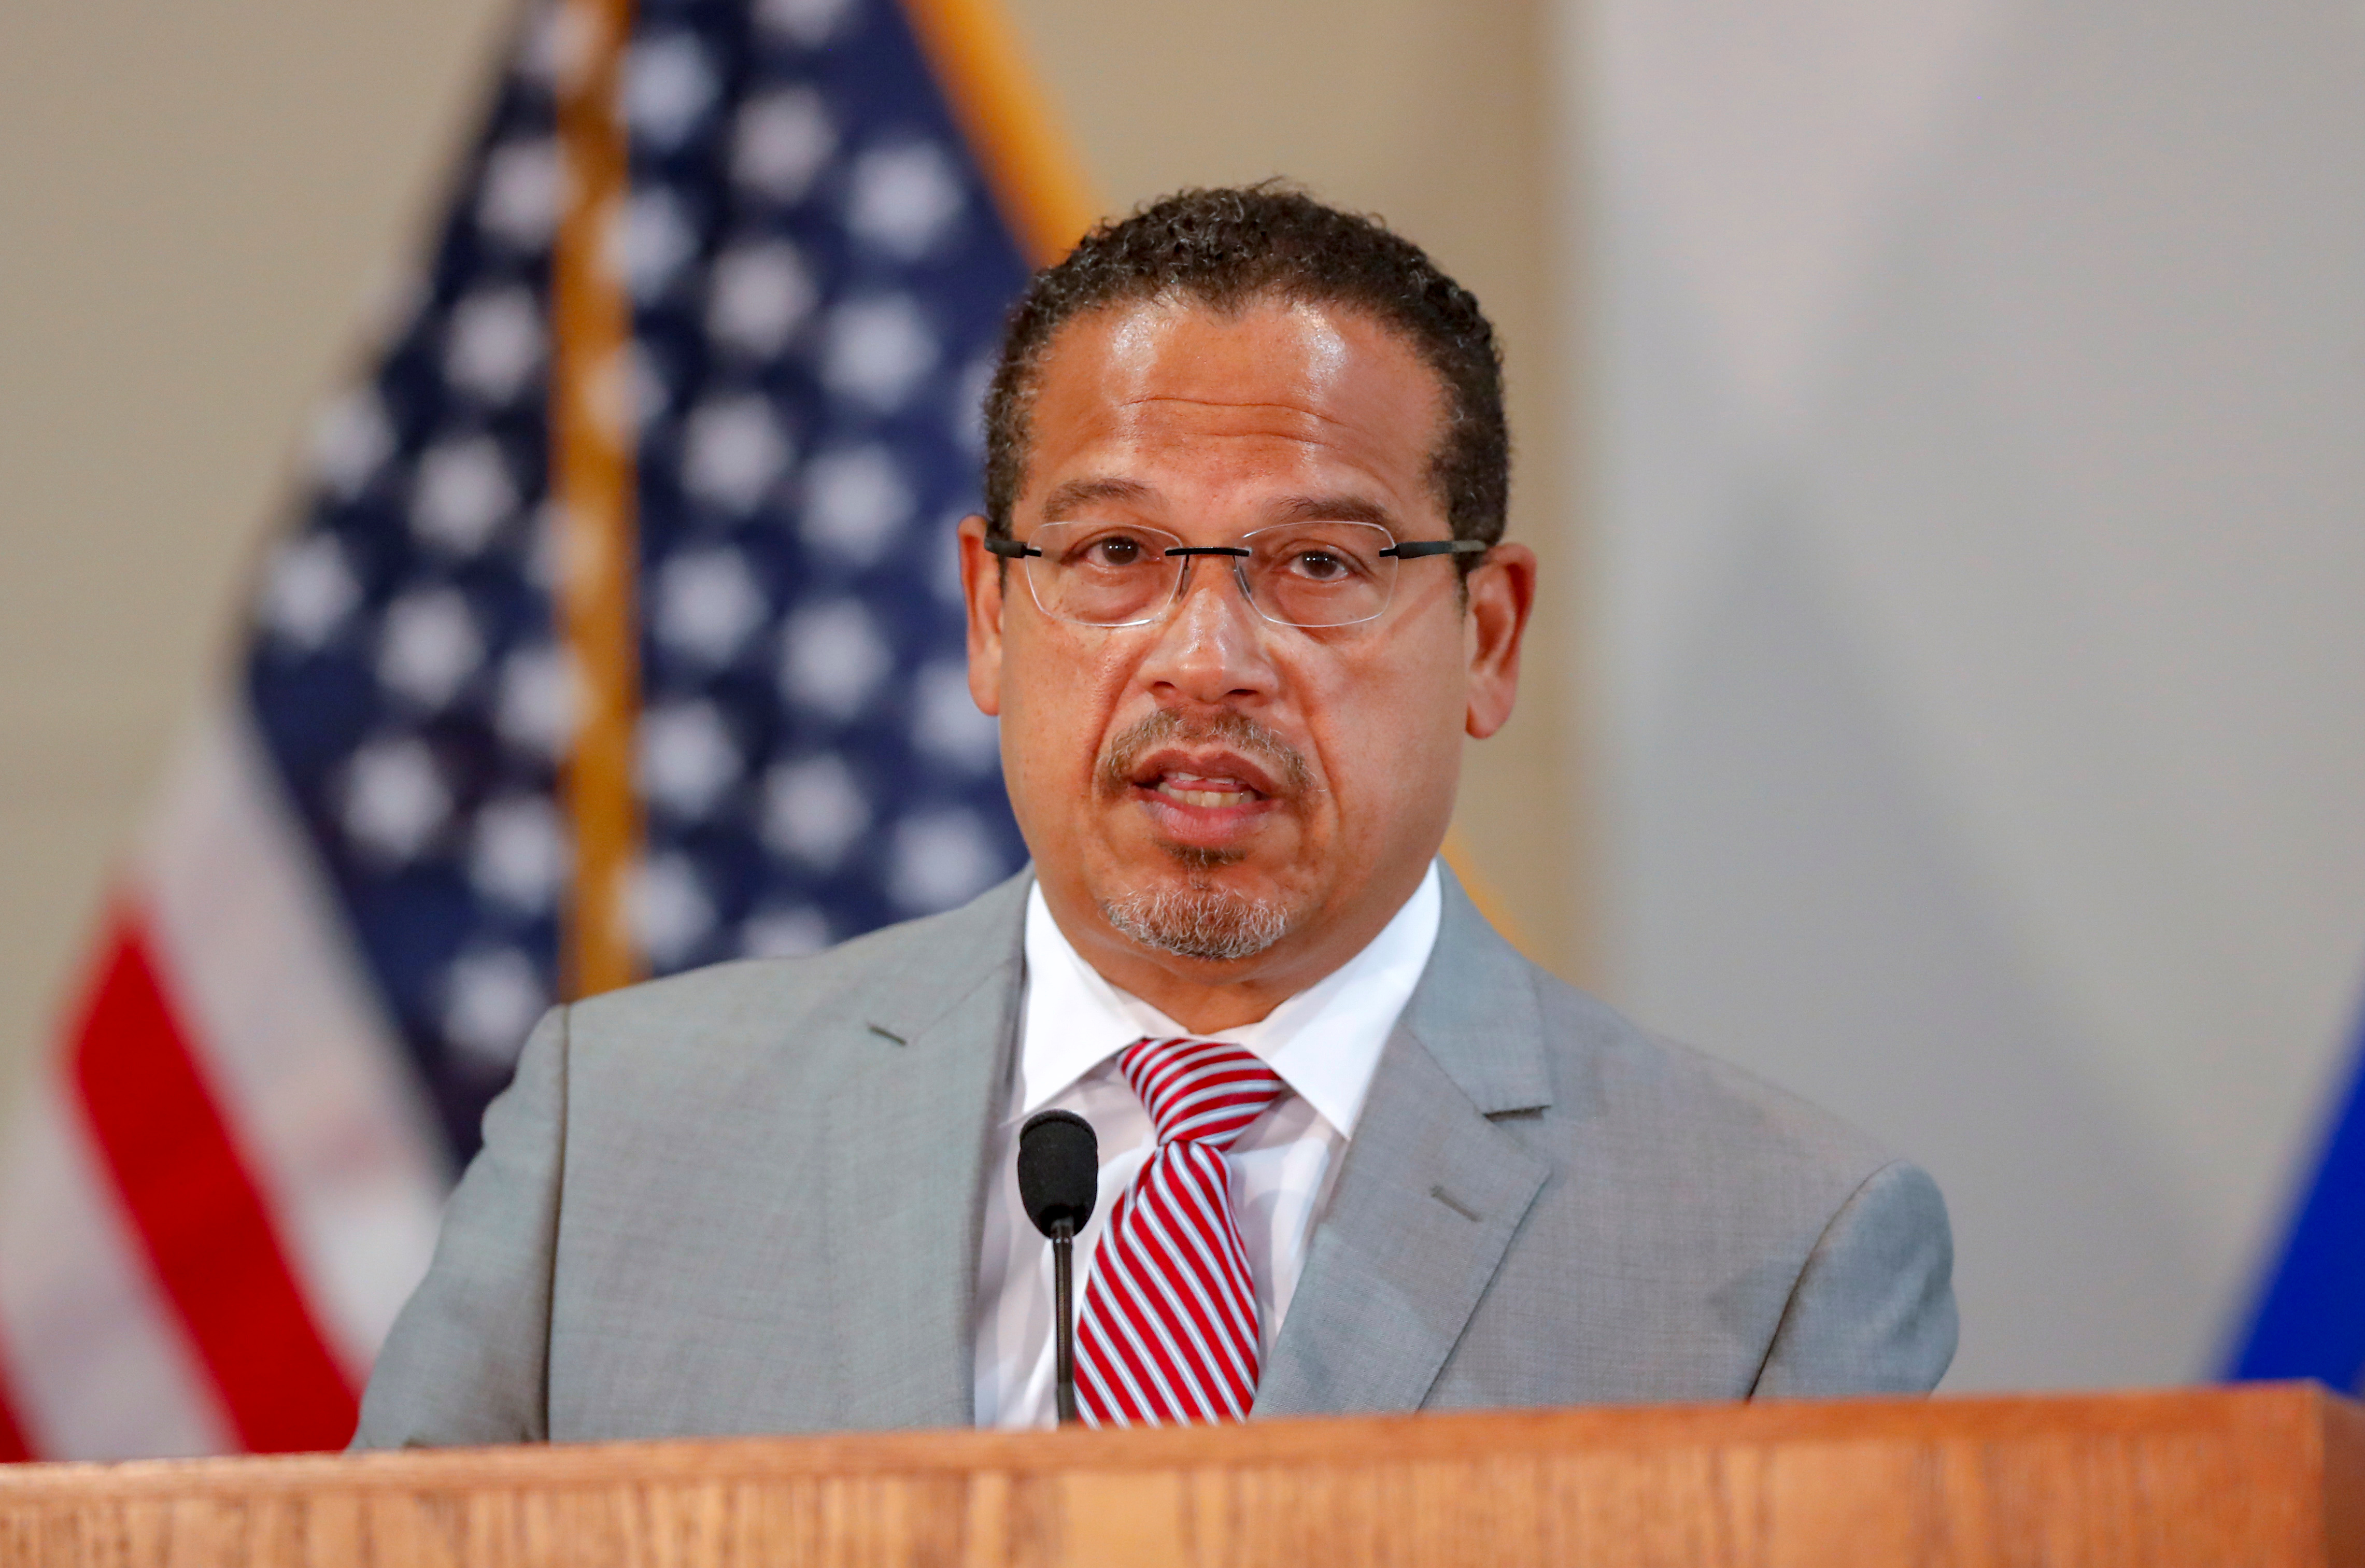 Minnesota Attorney General Keith Ellison announces upgraded charges against former Minneapolis police officer Derek Chauvin and charges against three other former police officers involved in the death of George Floyd in police custody, in St. Paul, Minnesota, U.S. June 3, 2020. REUTERS/Eric Miller